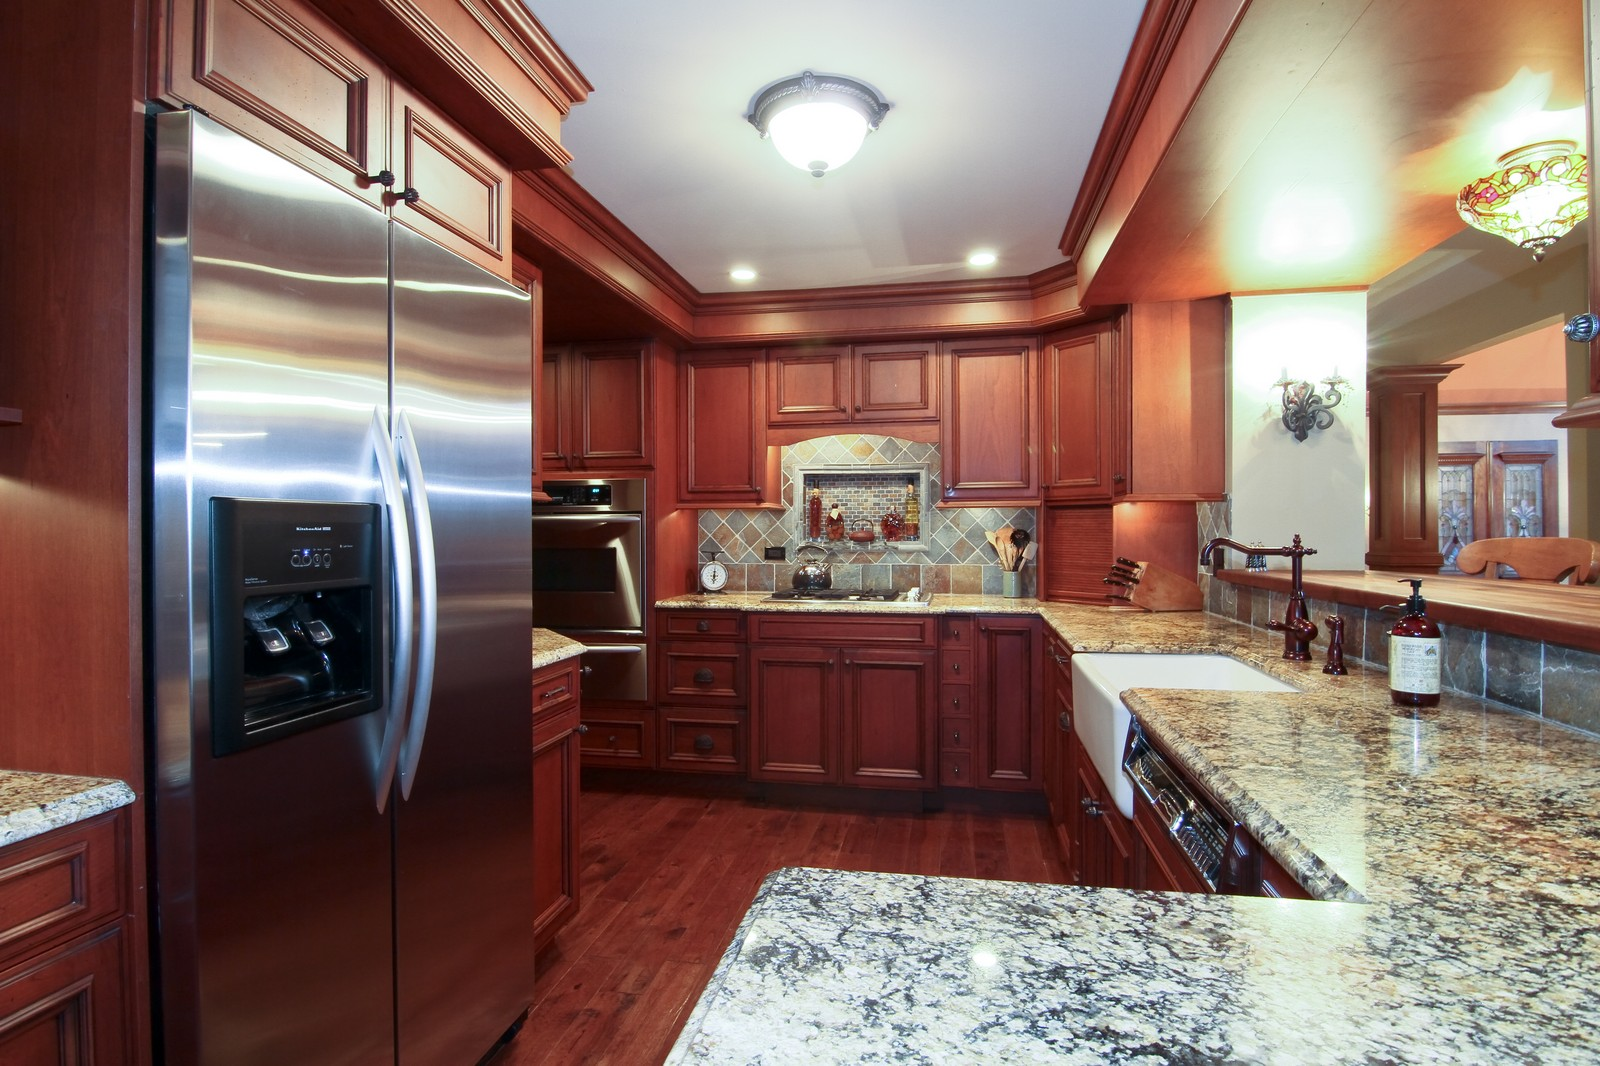 Real Estate Photography - 1160 Mistwood Ln, Downers Grove, IL, 60515 - Kitchen